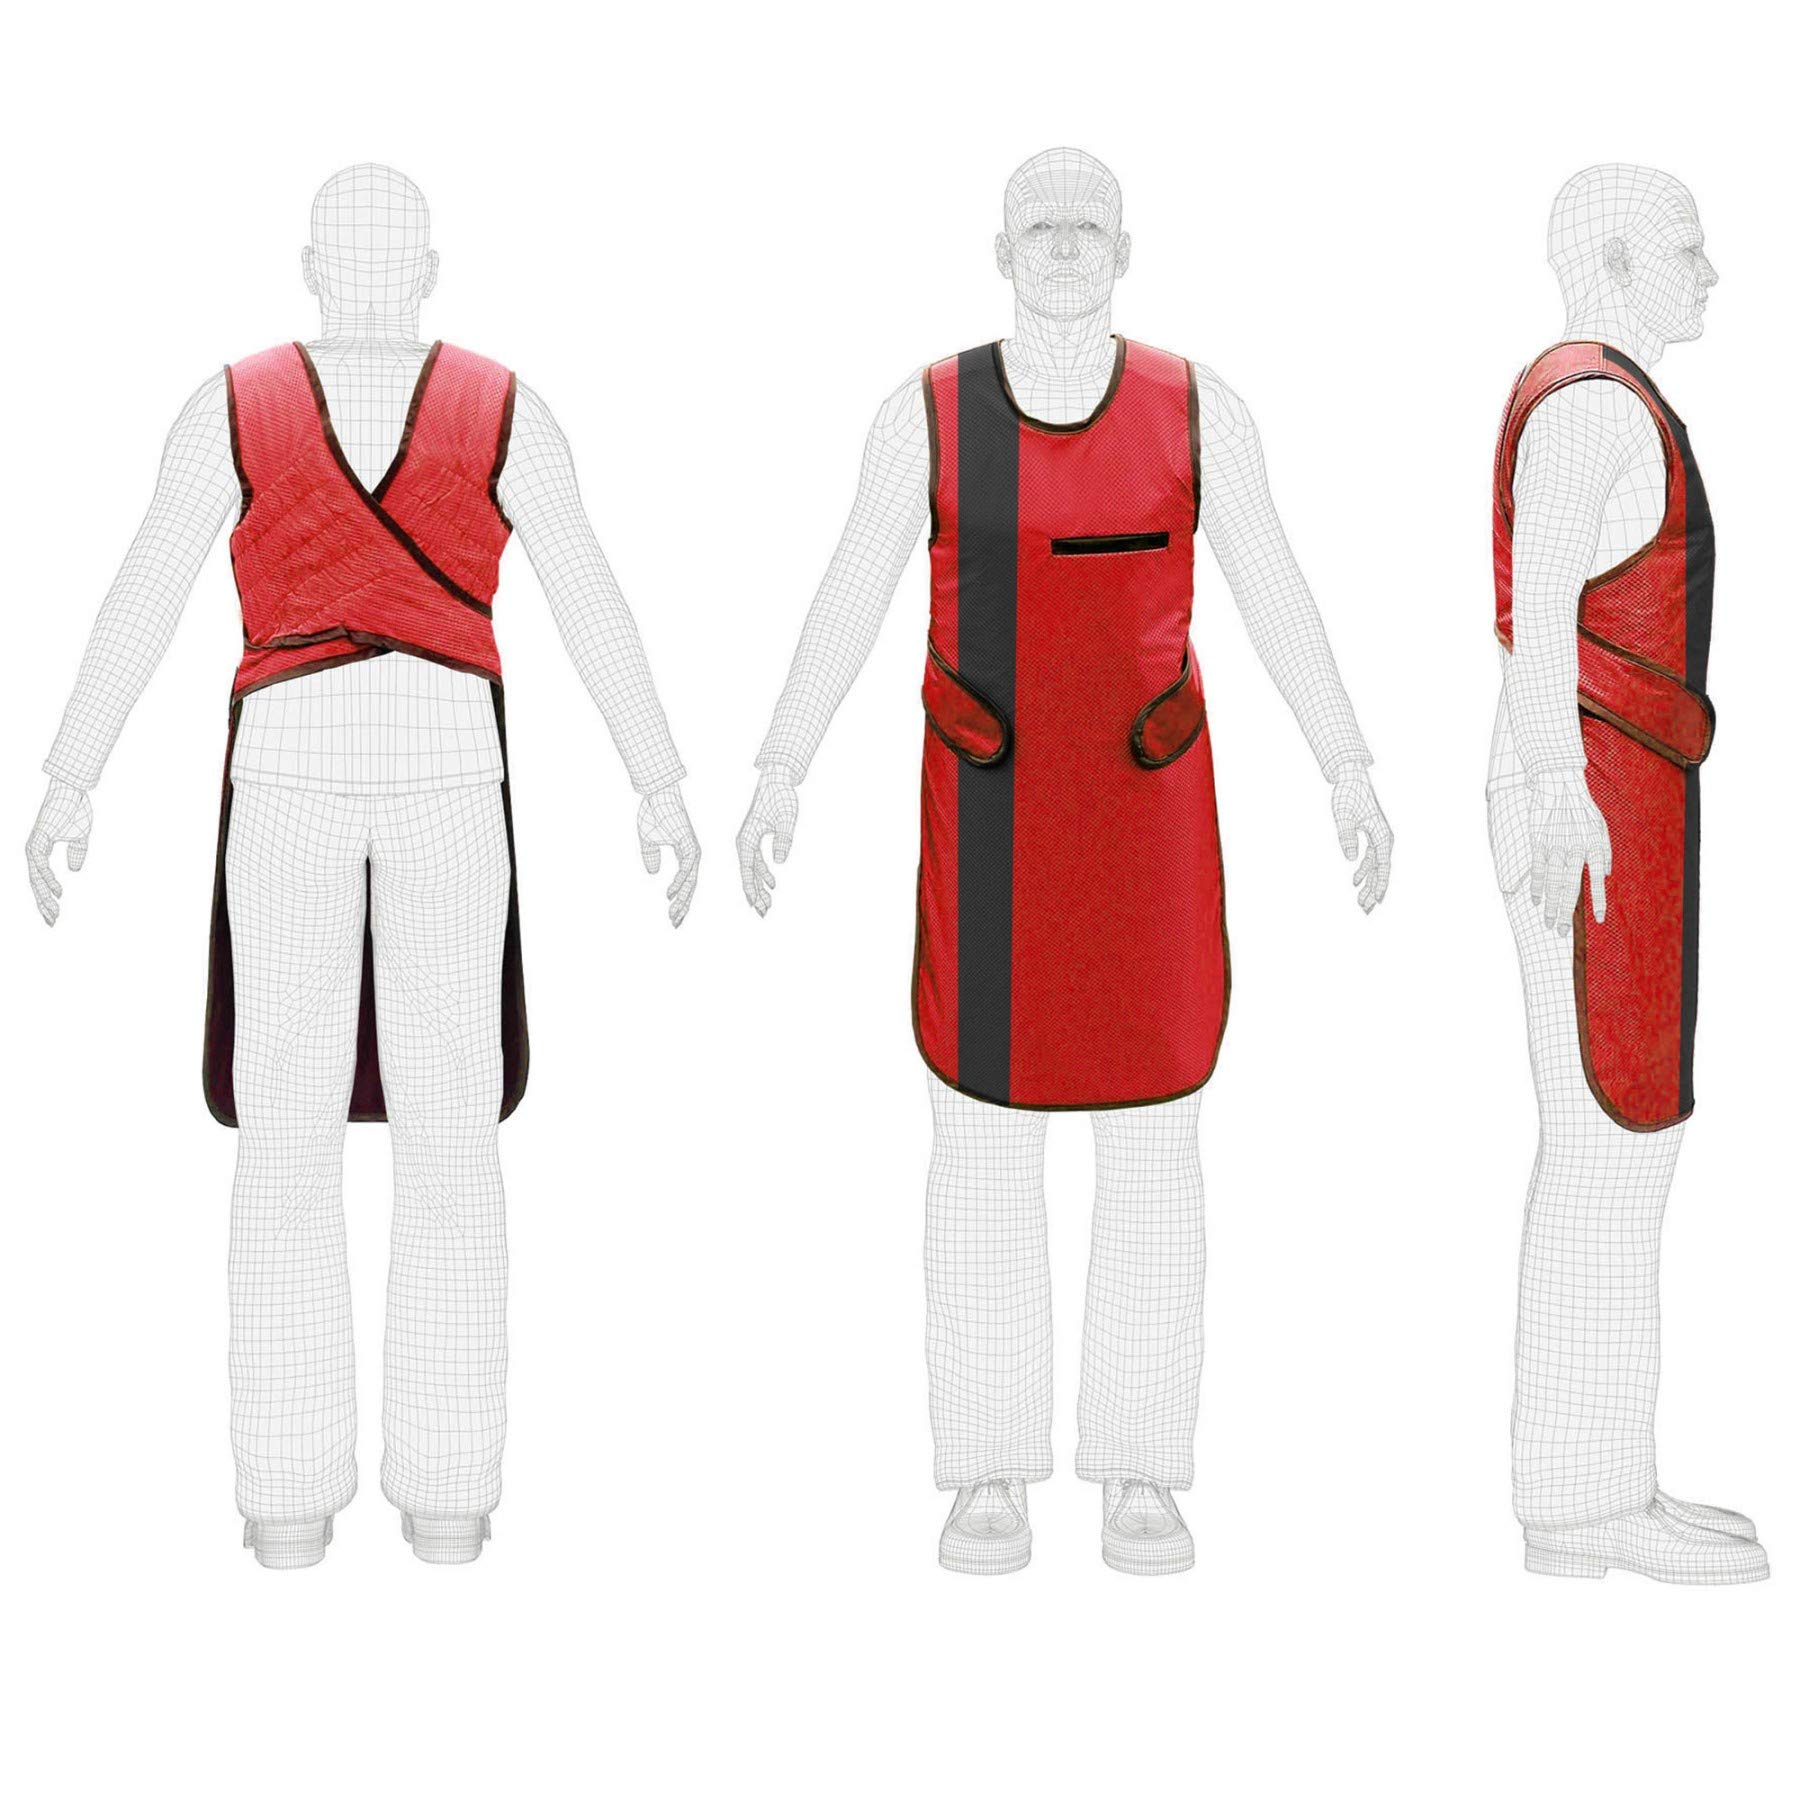 X Ray Radiation Protection Lead Apron 0.5mm Pb Lead Equivalent (Color Red & Black)